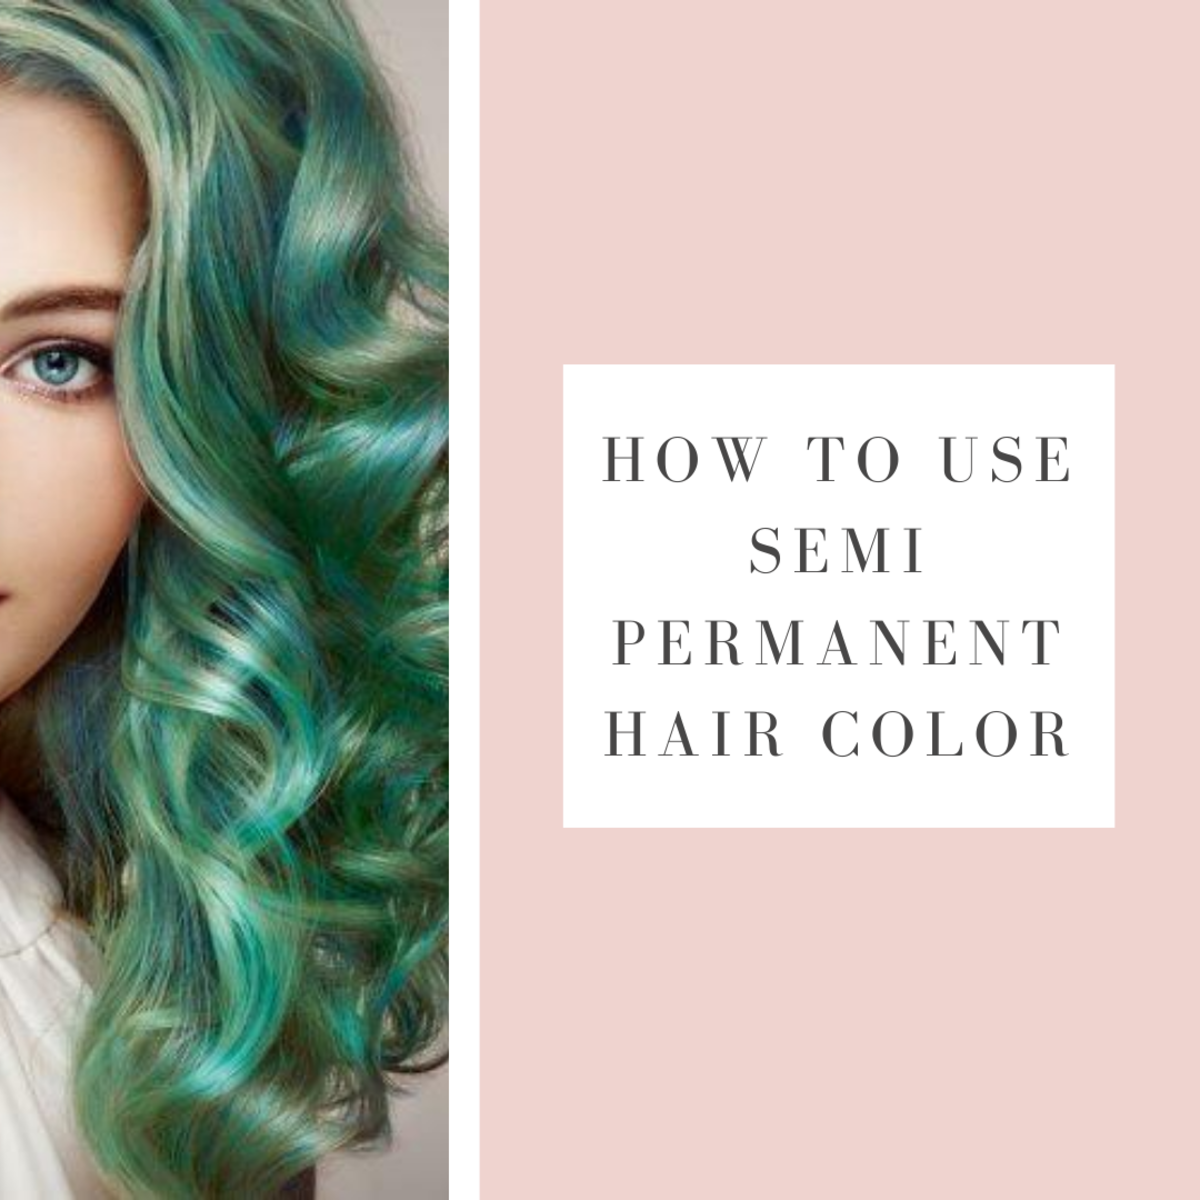 How to Use Semi Permanent Hair Color